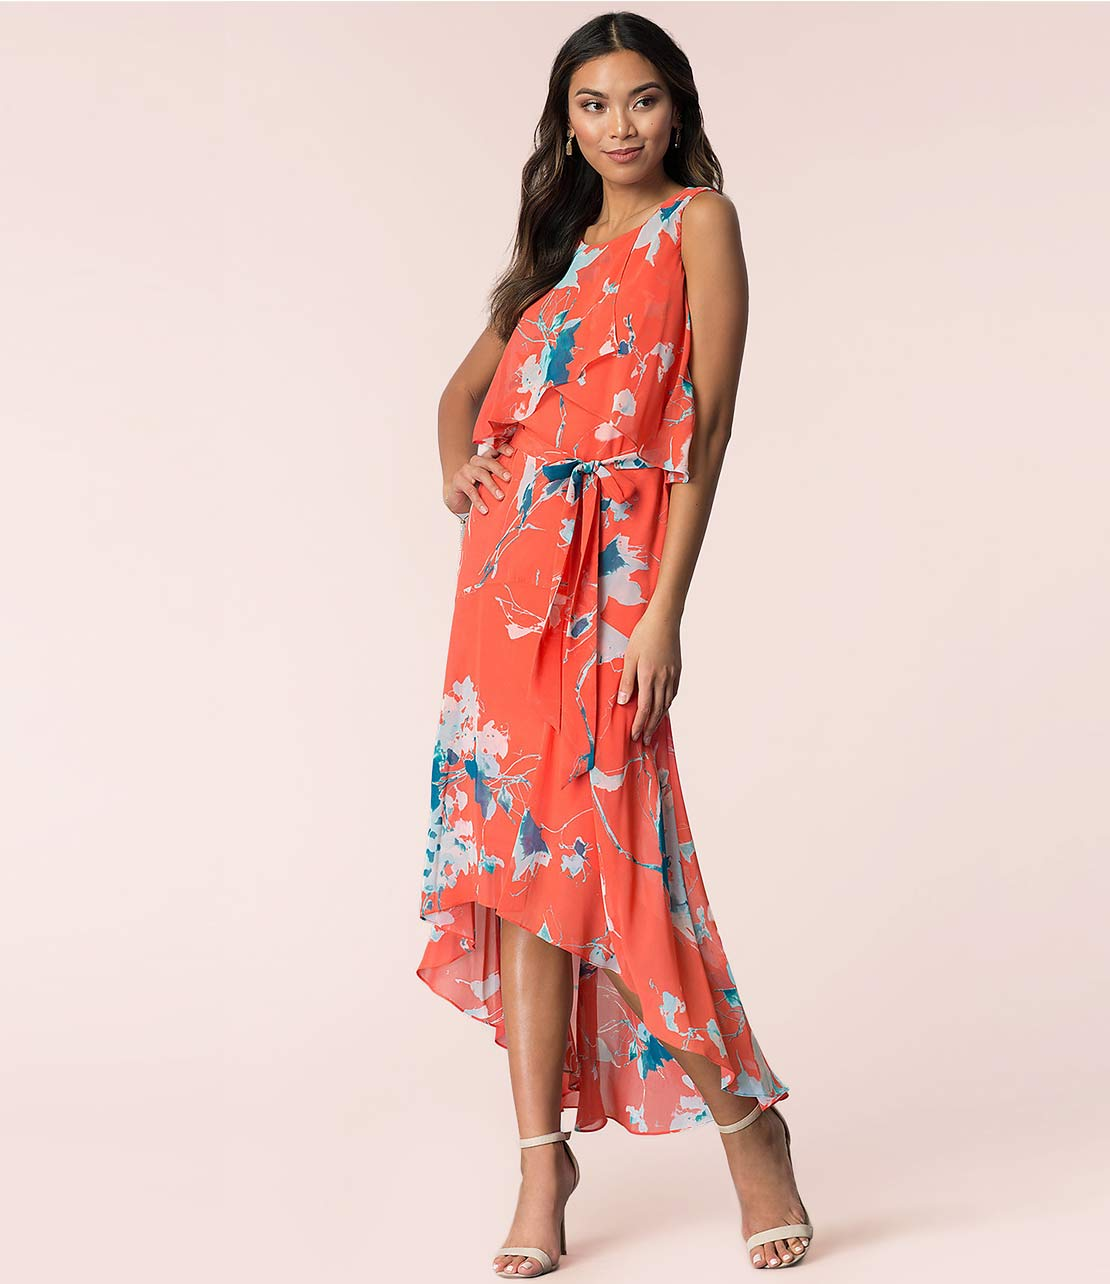 Casual High-Low Hemline Floral Print Dress in Coral